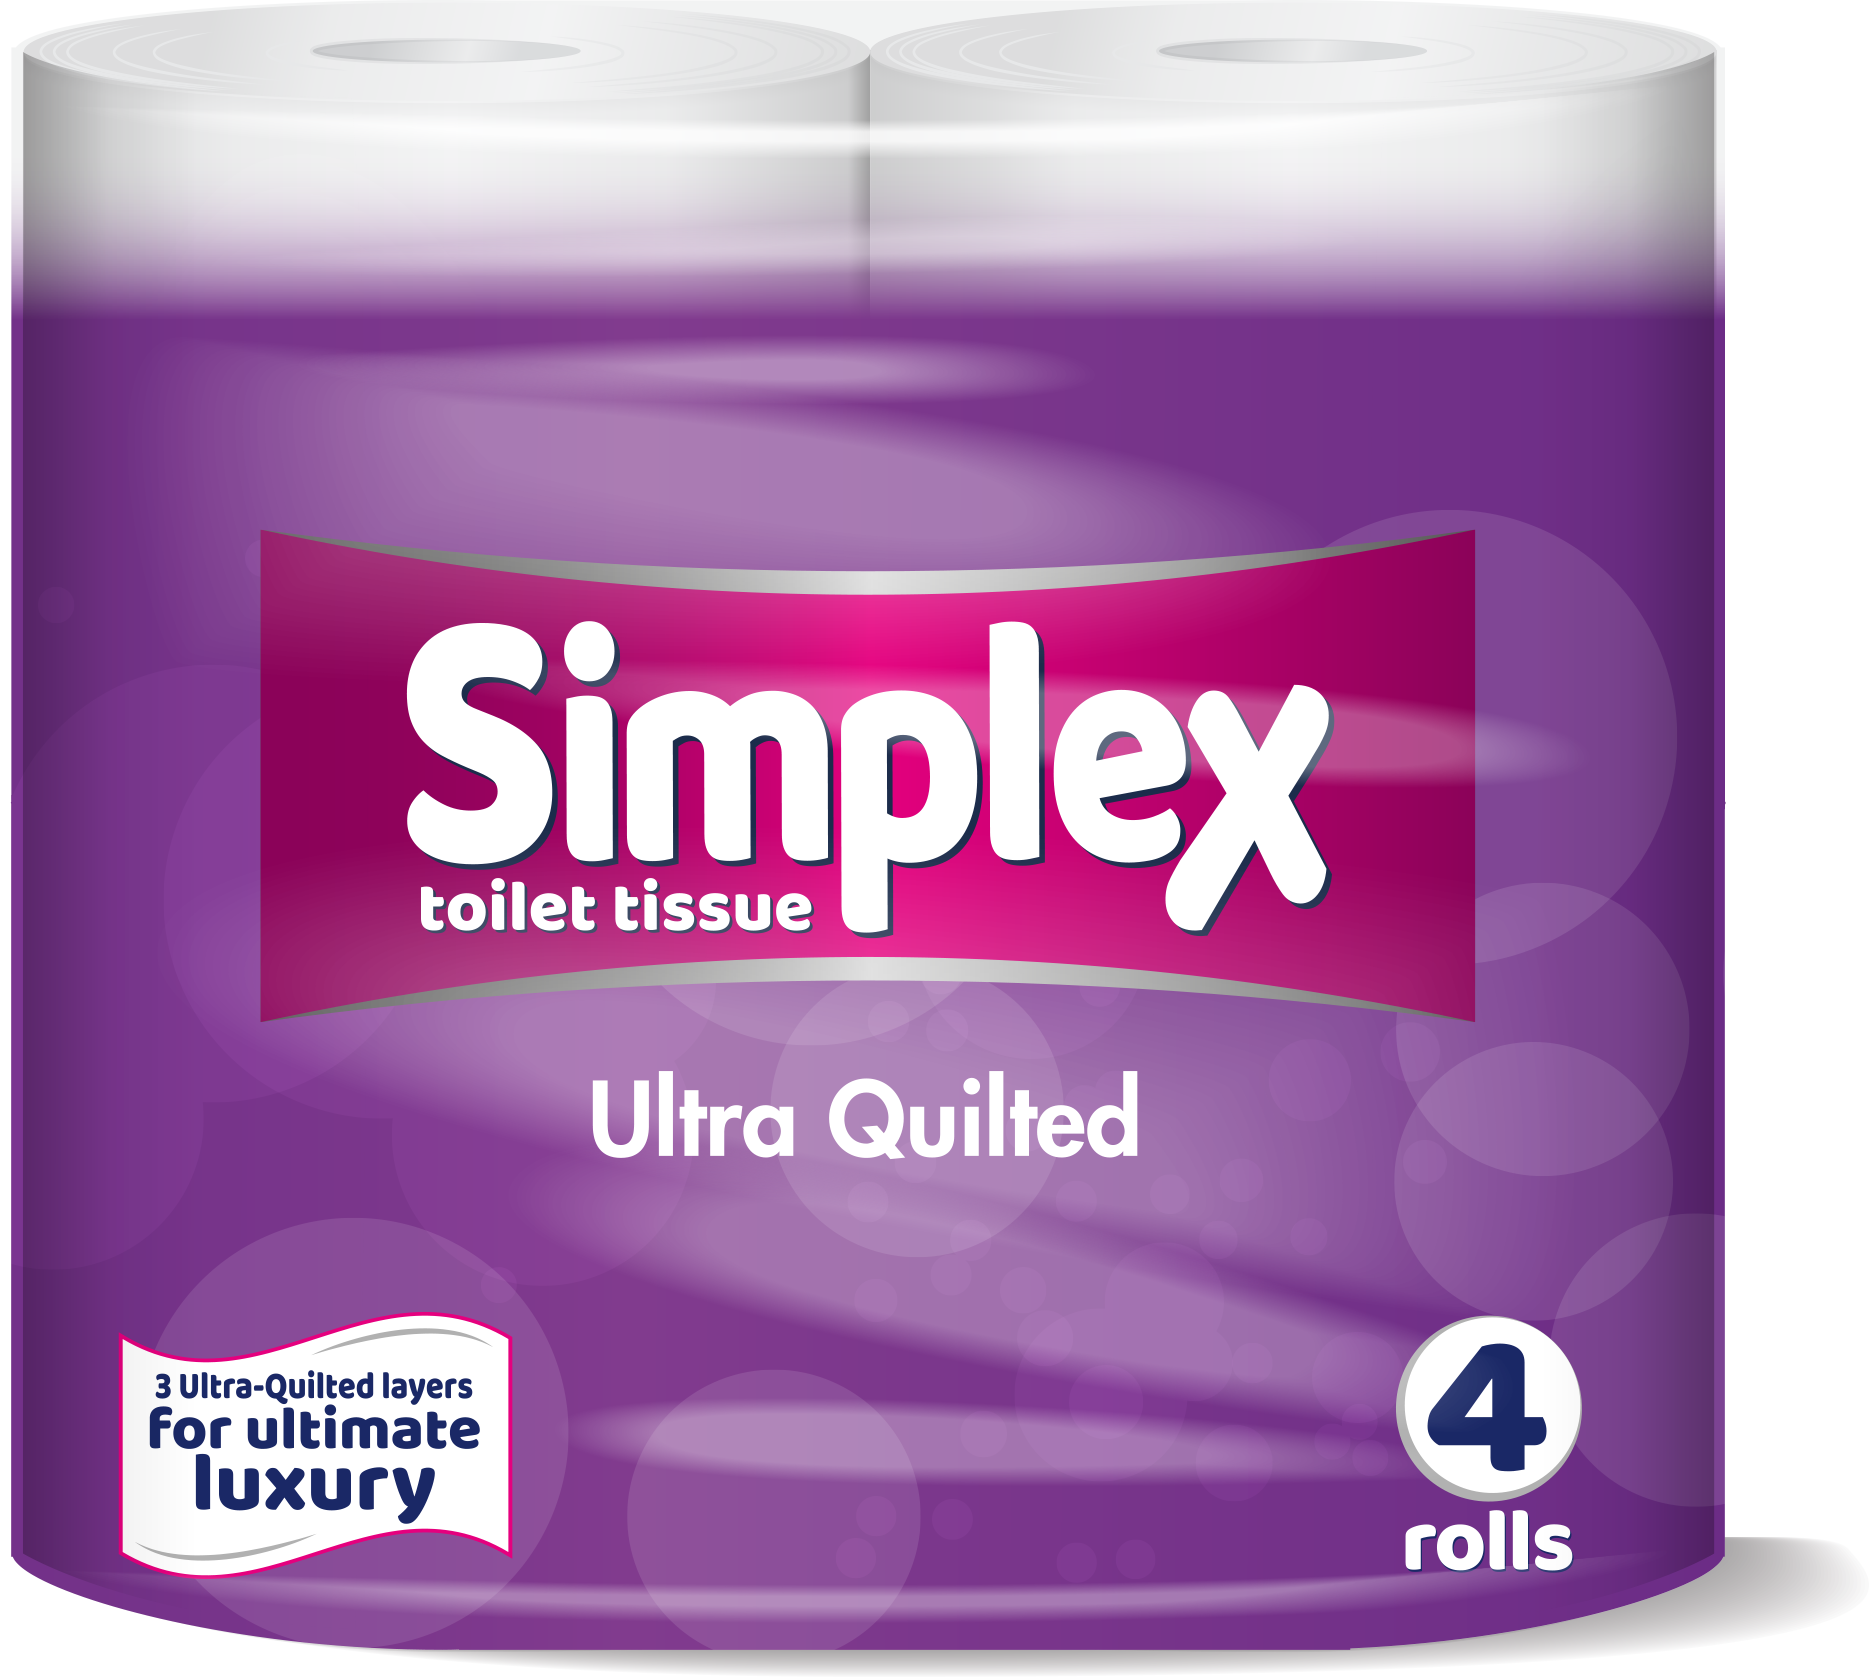 Simplex Ultra Quilted Pure White Toilet Tissue - 10x4 Pack